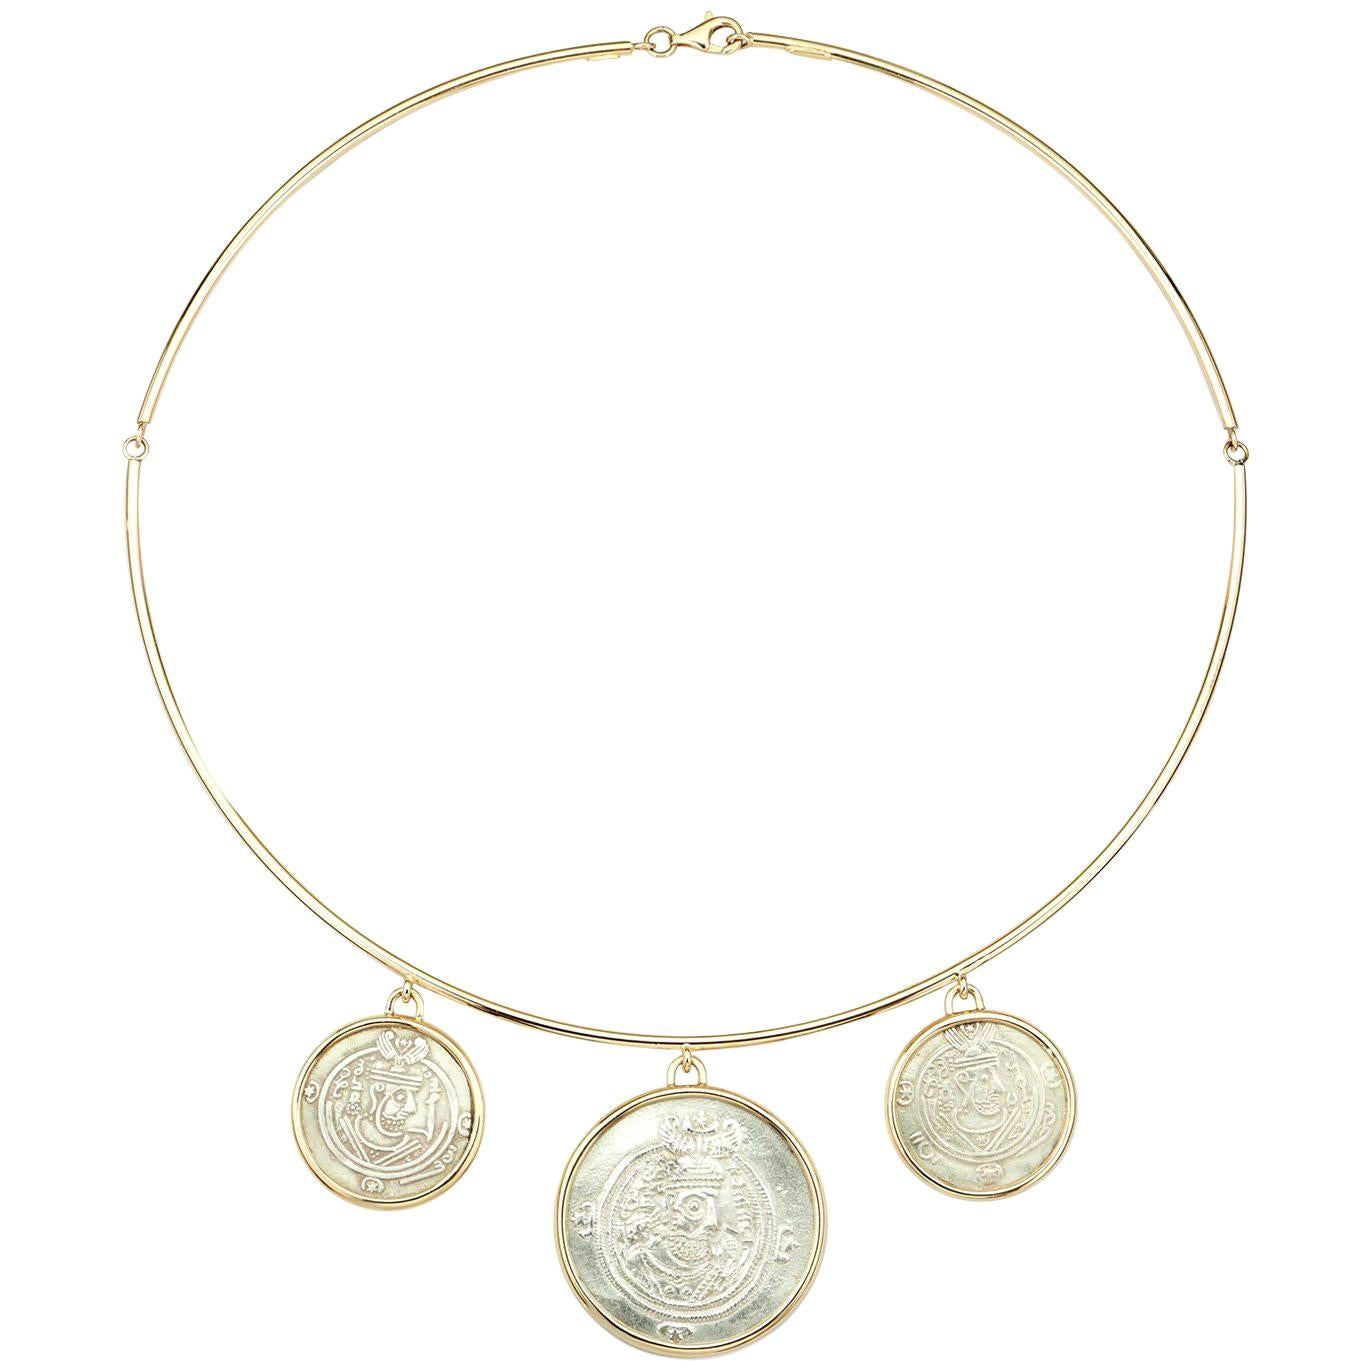 Dubini Ancient Governors of Tabaristan Silver Coin 18 Karat Yellow Gold Necklace